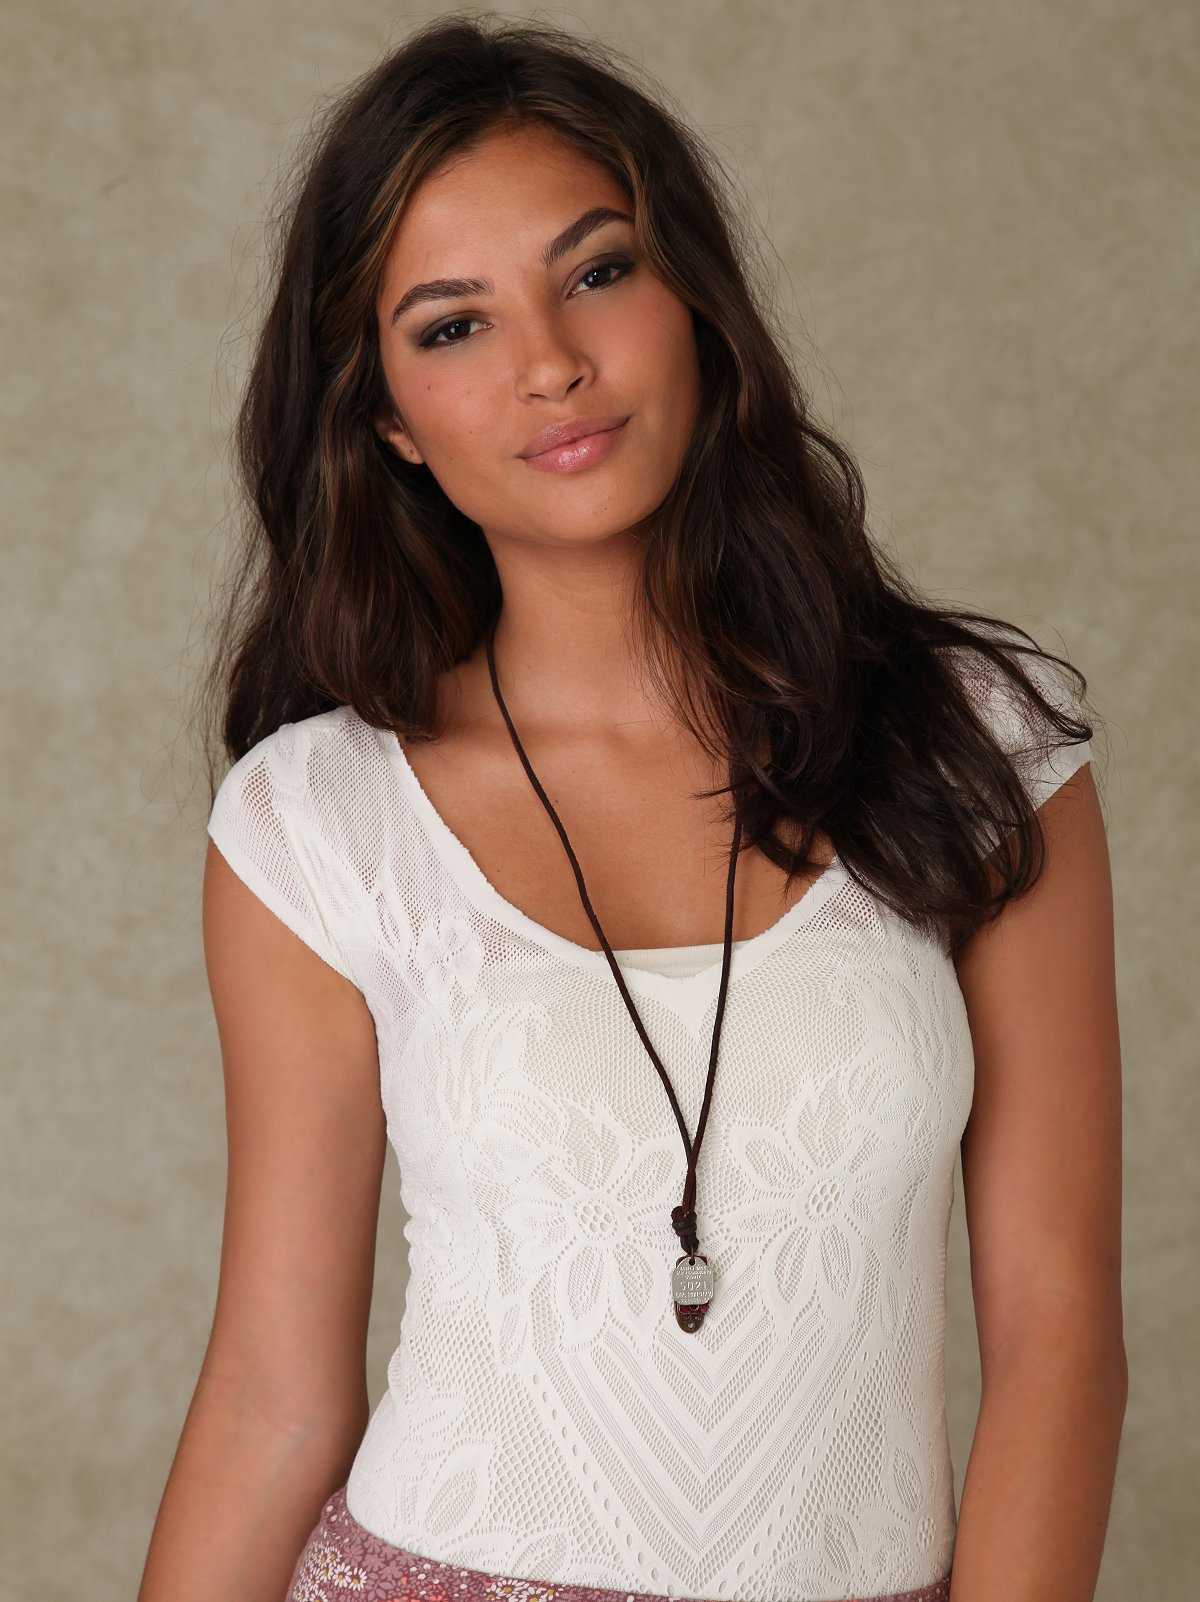 Corporal Charm Necklace